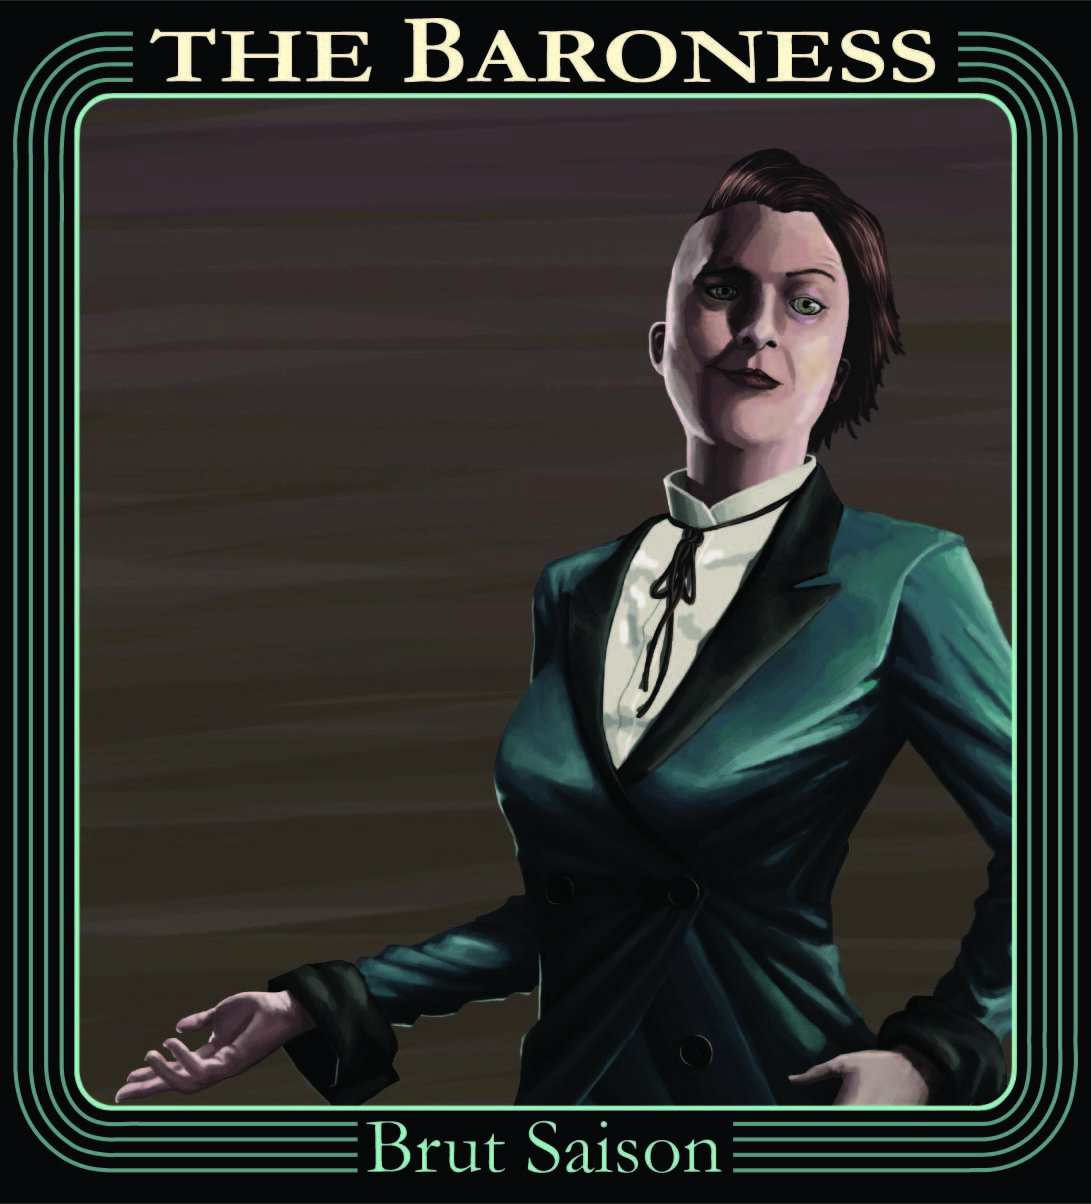 BRUT SAISON - The Baroness is a tart, dry, effervescent, tribute to our favorite sorceress, Collete Dubois. It features flavors and aromas of elderflower, apricot, and zesty citrus. 5% alc/vol.